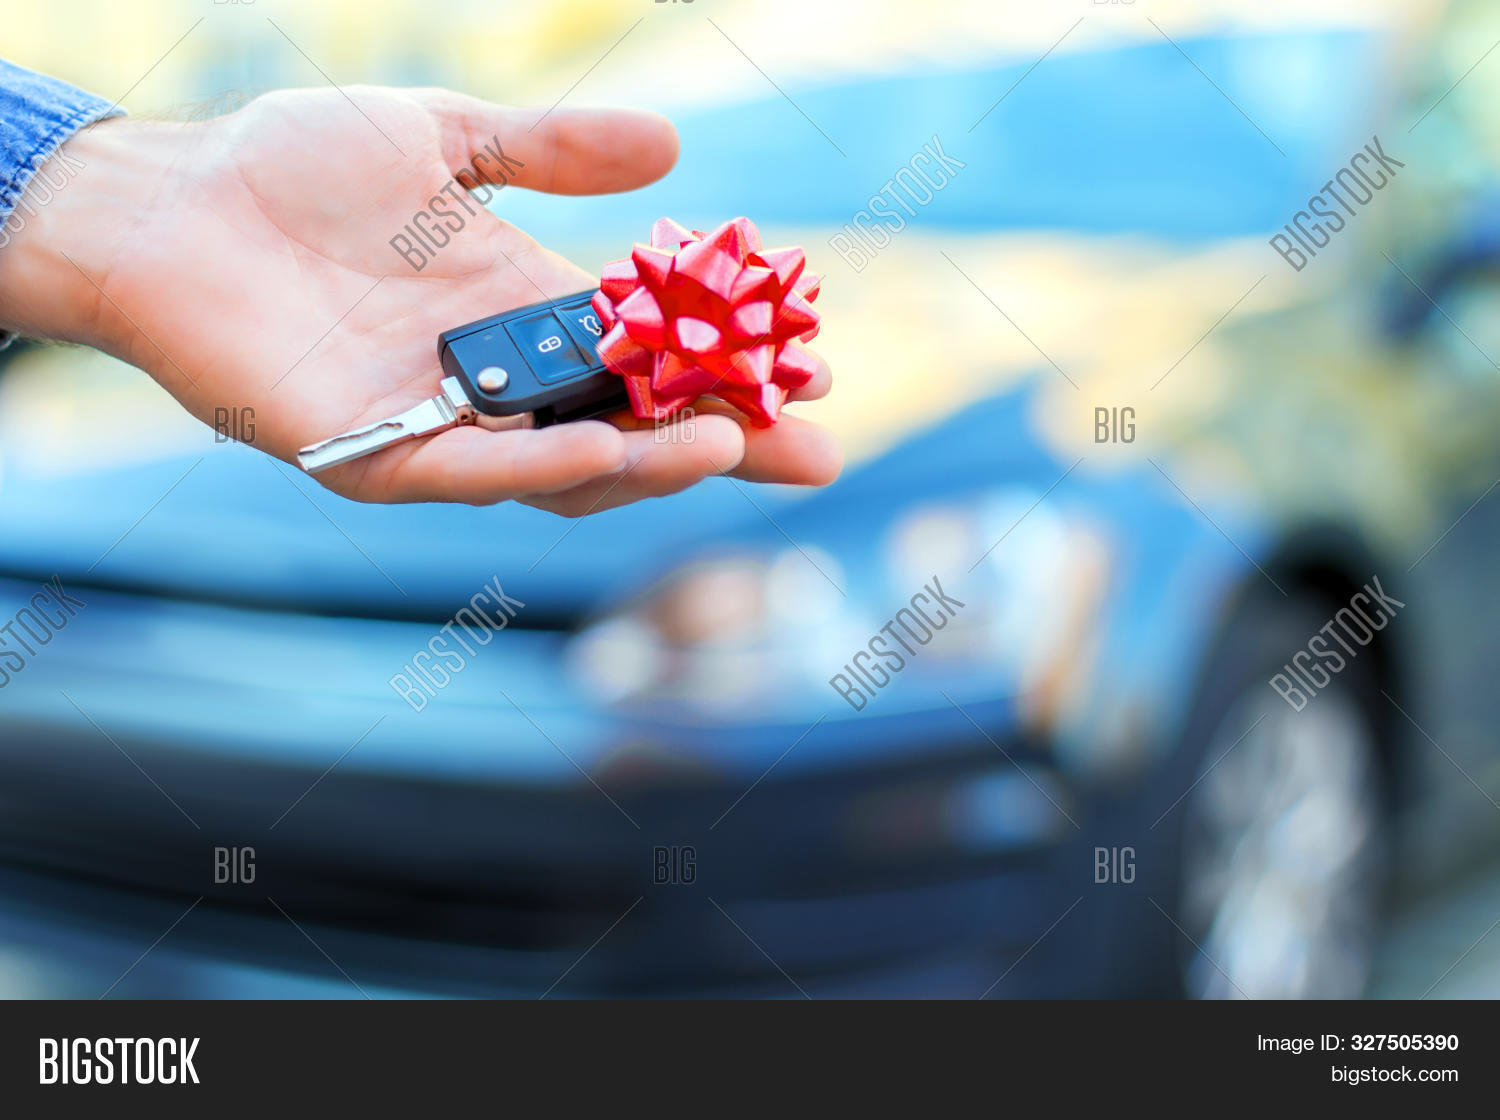 adult,auto,automobile,background,behind,birthday,black,bow,business,buyer,buying,car,celebration,closeup,credit,customer,driver,fortune,gift,going,hand,happy,holding,keys,lifestyle,lottery,luck,lucky,male,man,new,owner,people,person,present,purchase,raffle,red,retail,sale,service,shopping,sitting,steering,surprise,vehicle,wheel,winner,won,young